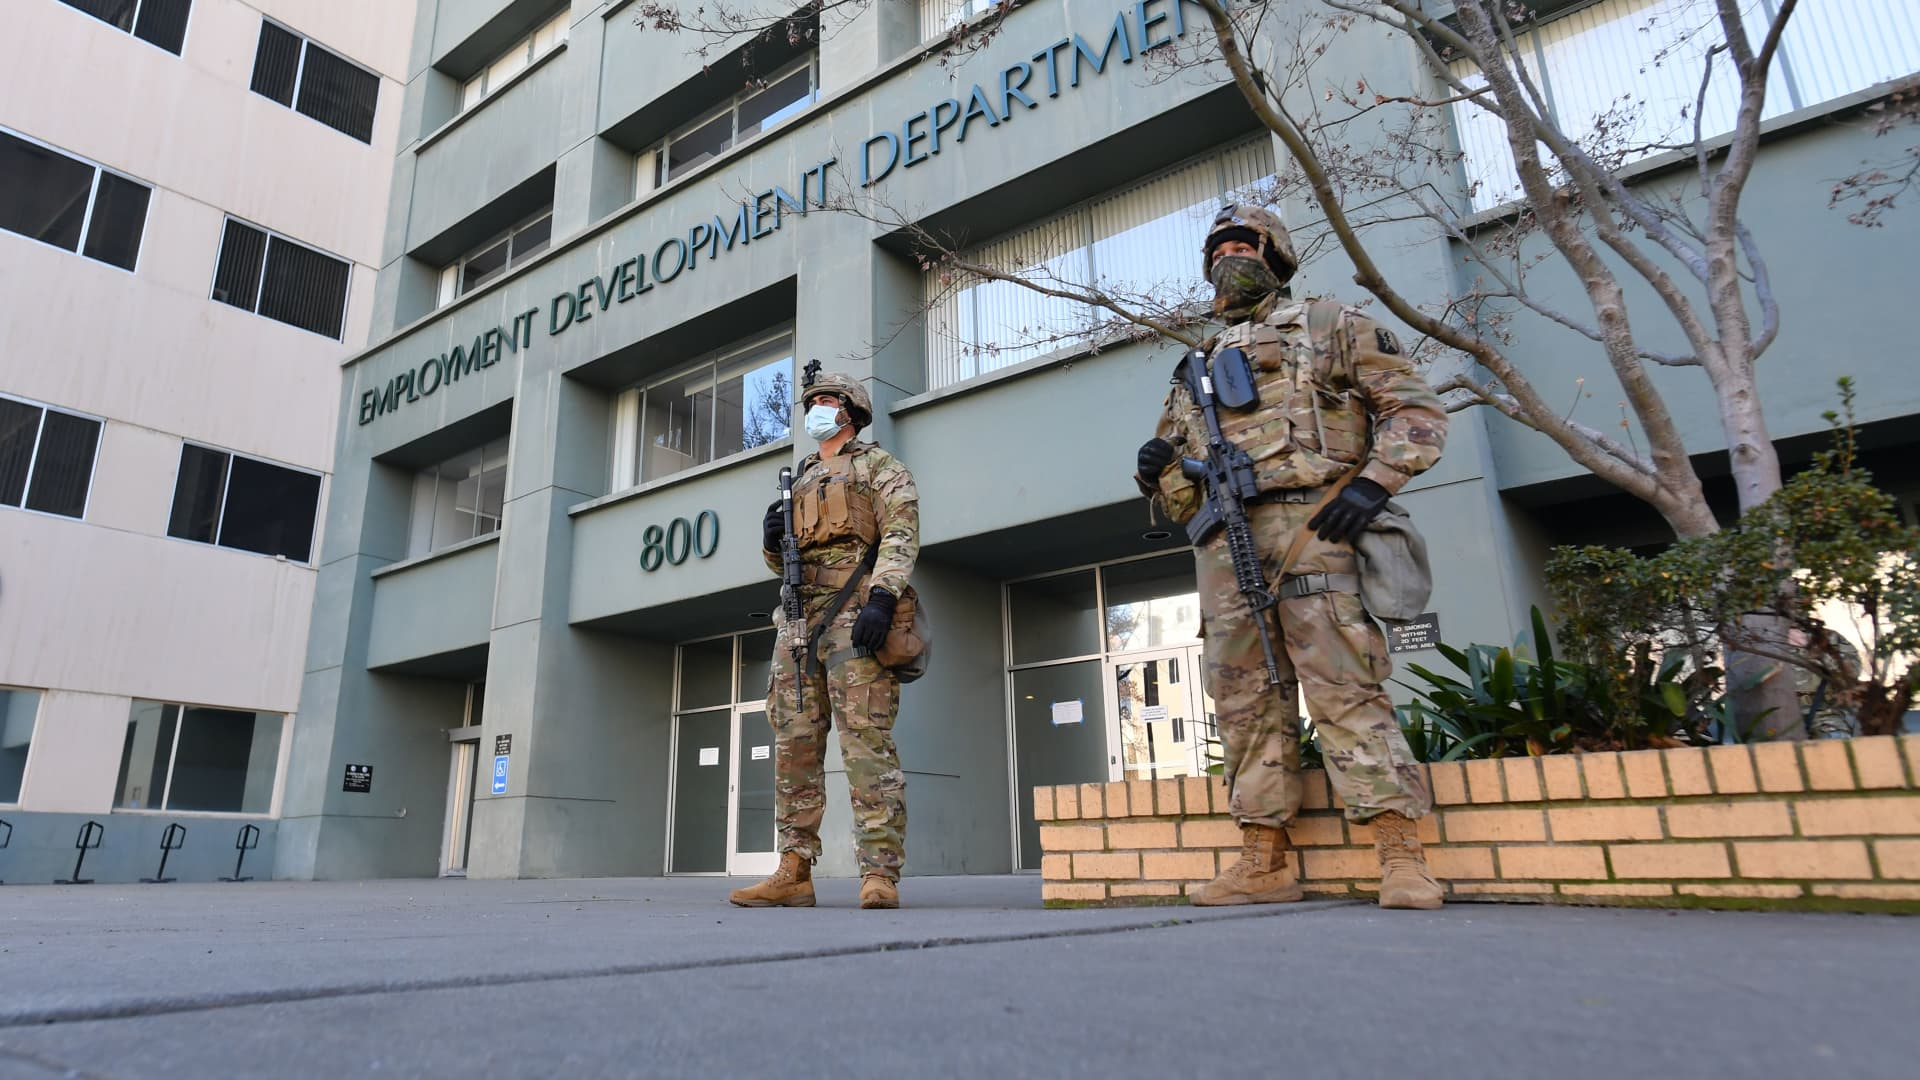 National Guard members in front of an Employment Development Department building near the State Capitol in Sacramento, Calif., on Jan. 17, 2021.